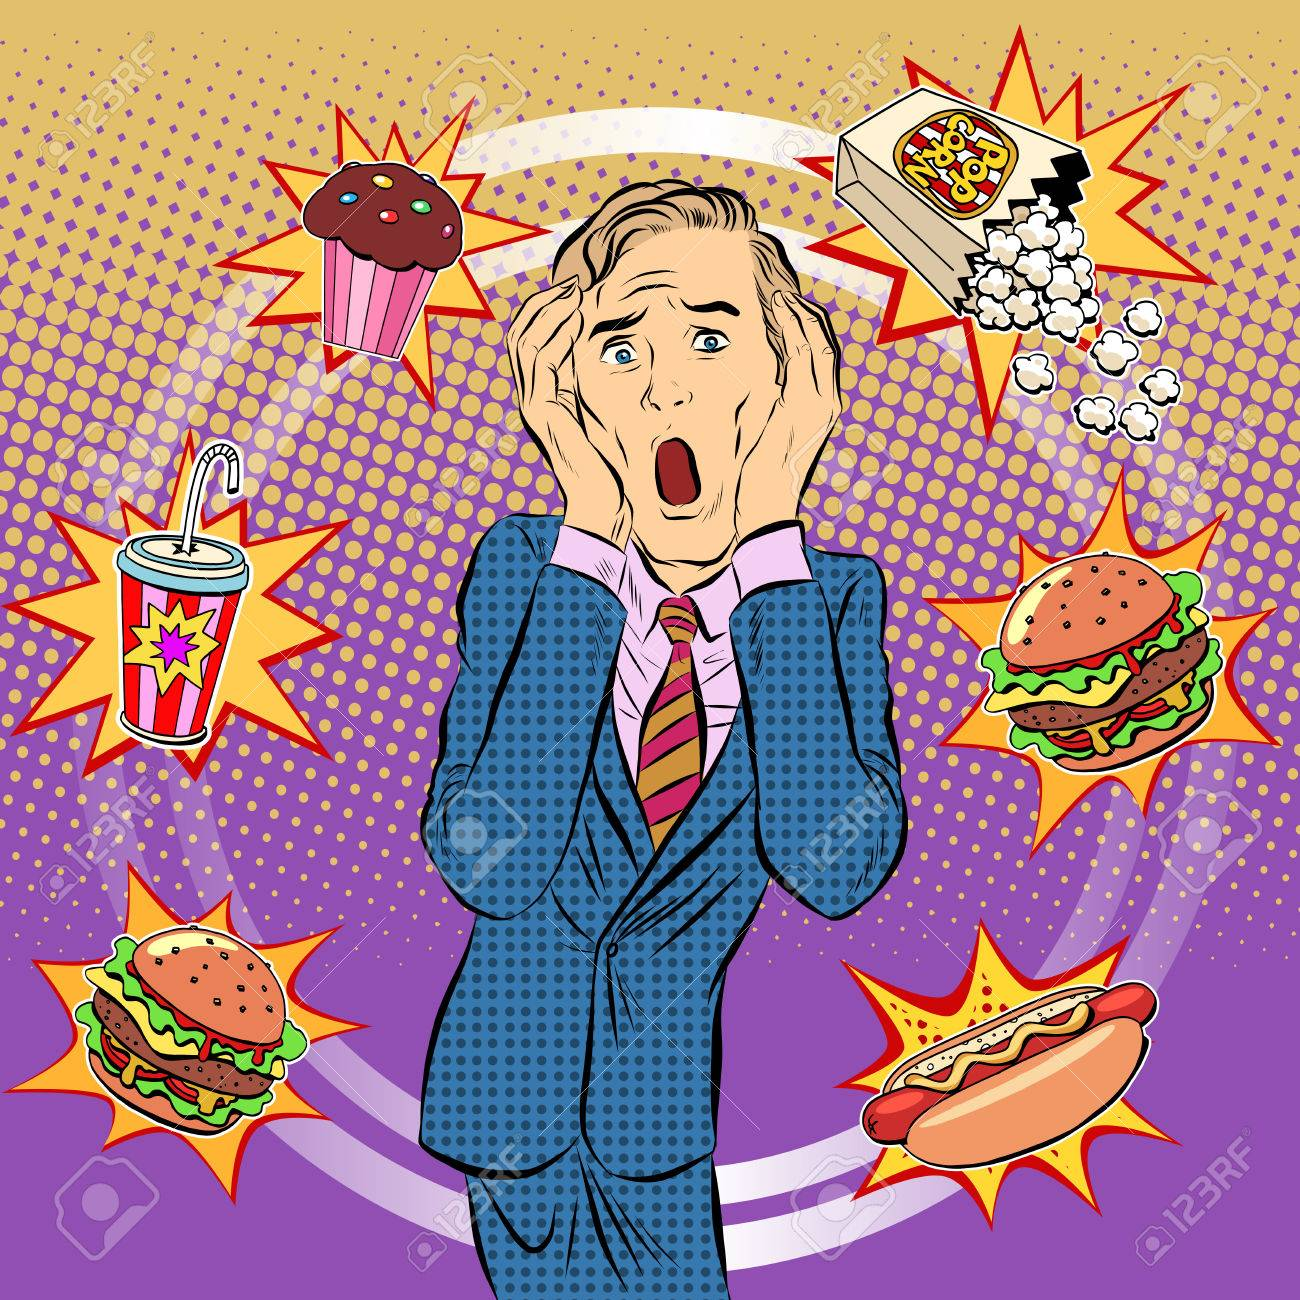 Fast food man unhealthy diet panic pop art retro style. The health of a person. Office lunch. Time and food - 51900698